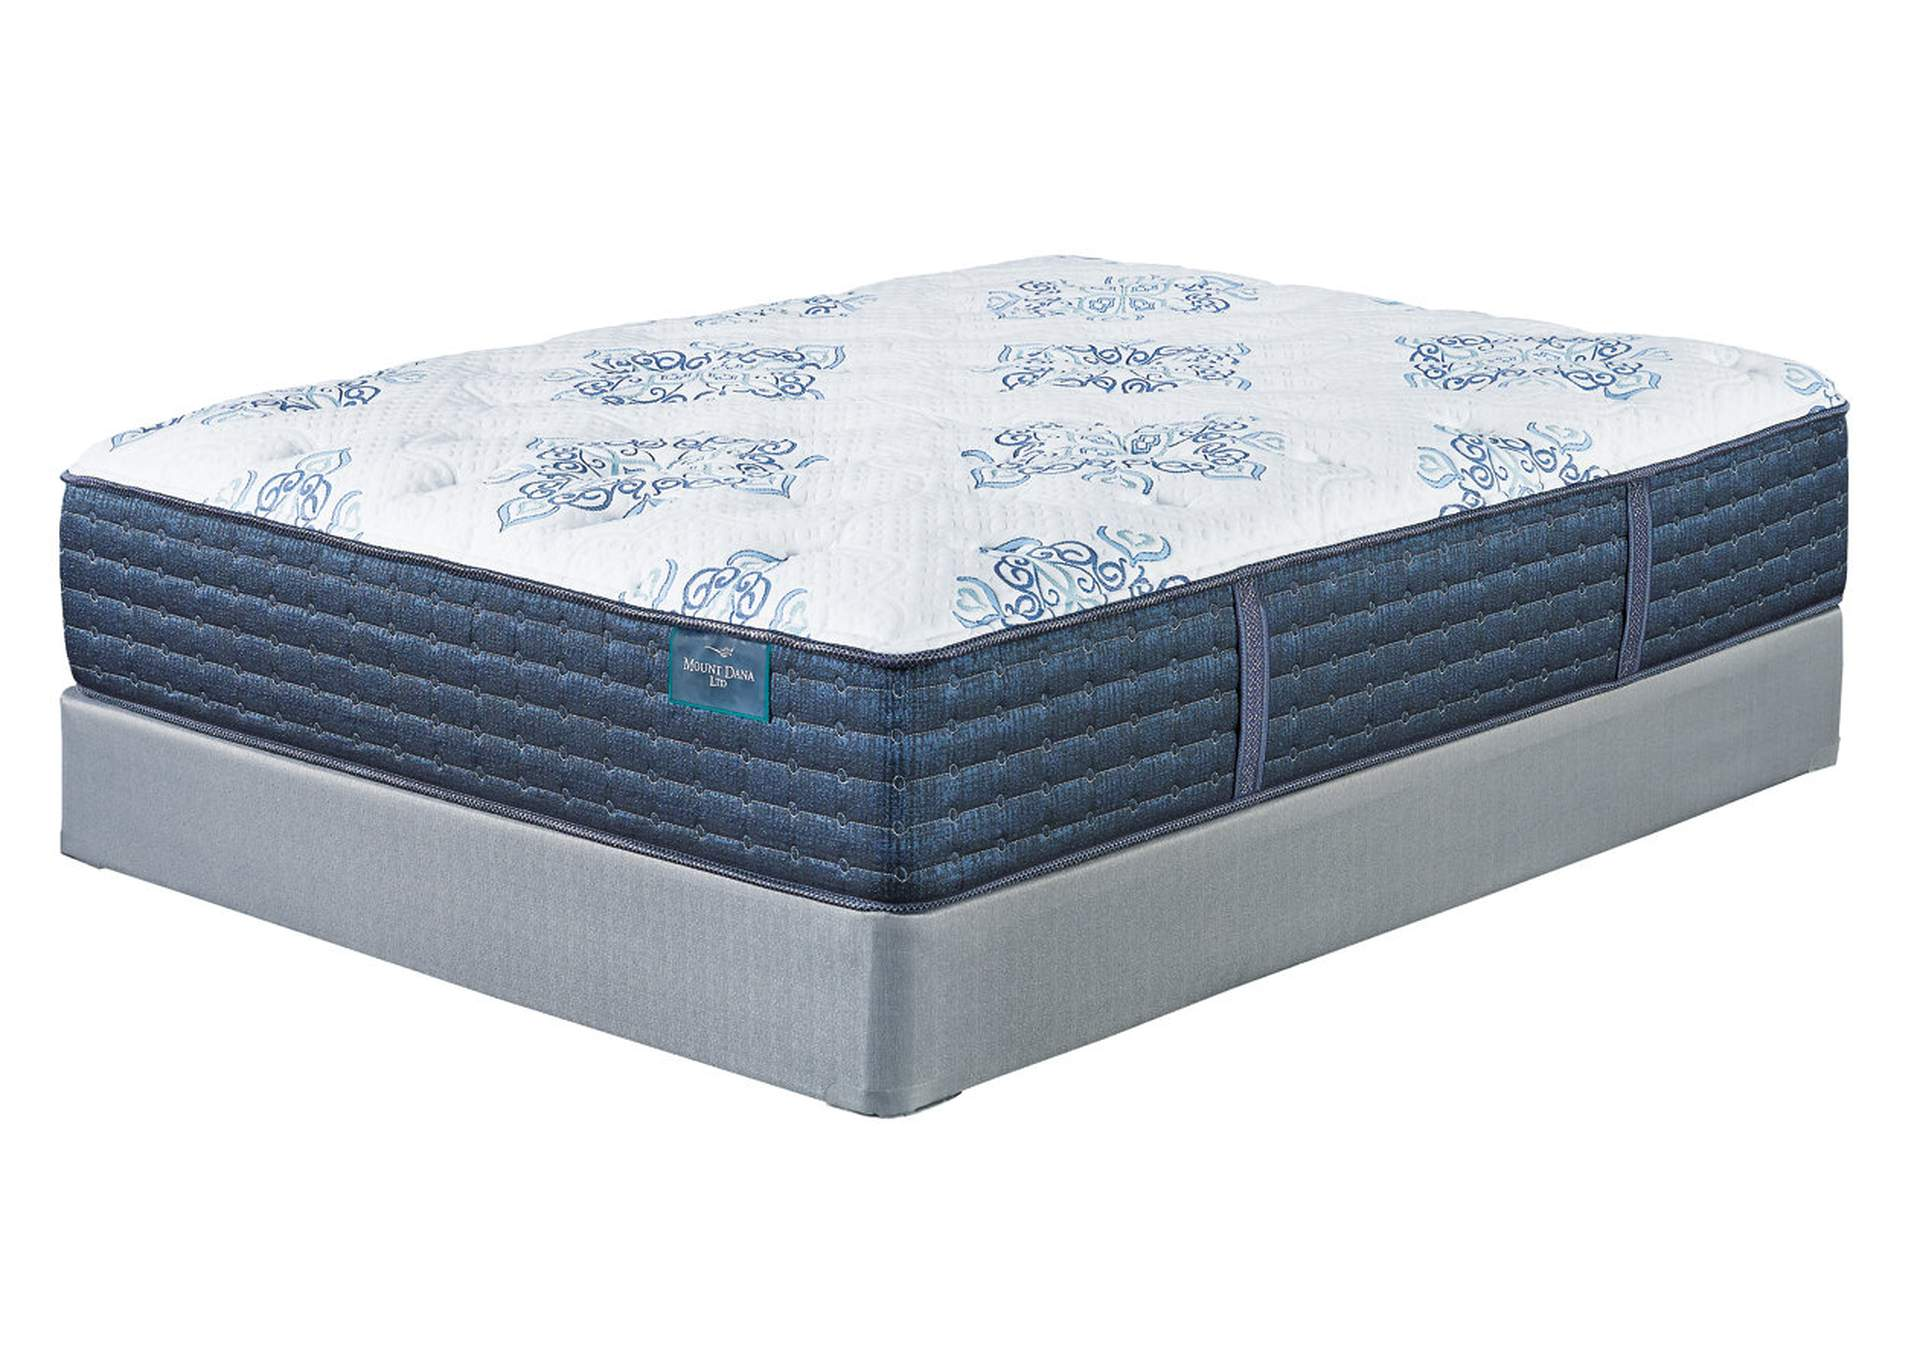 Mt. Dana Plush White Queen Mattress,Sierra Sleep by Ashley